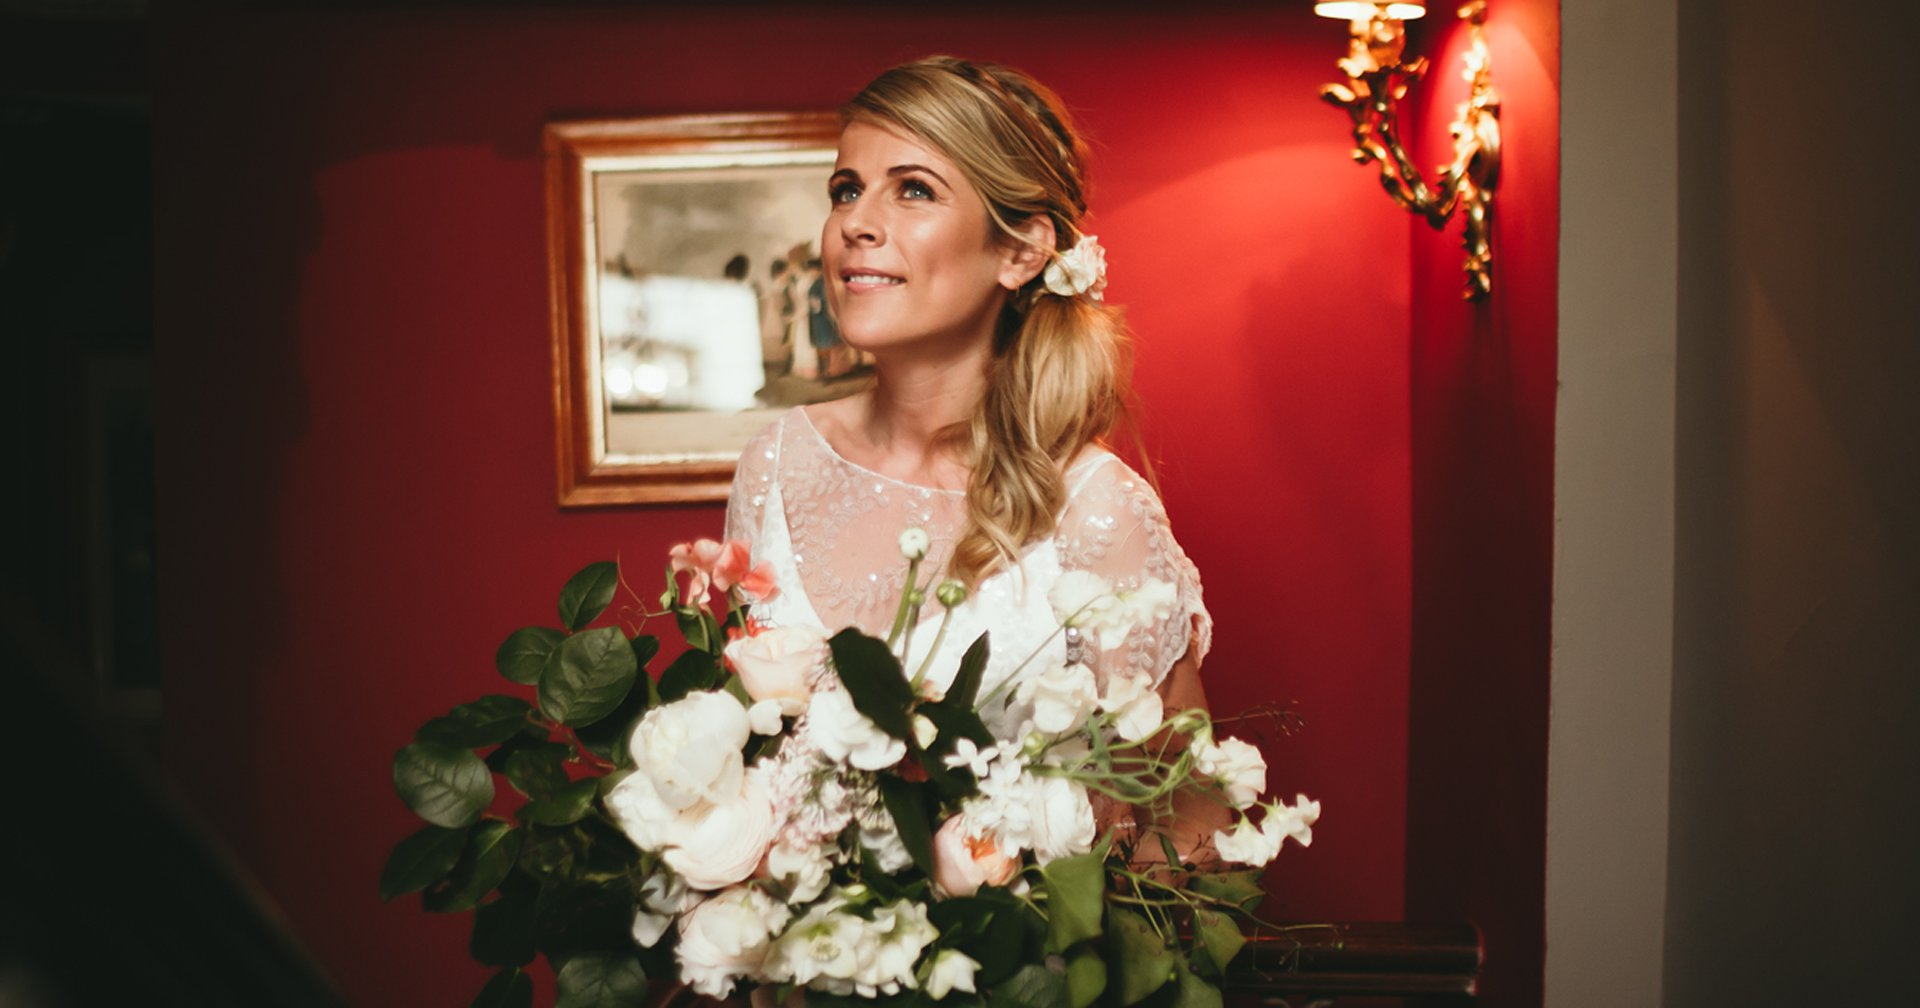 Luxury Wedding Planners & Stylists UK. Boutique, stylish, elegant, refined, creative weddings & parties in England, Yorkshire, Cheshire, Cotswolds, London.